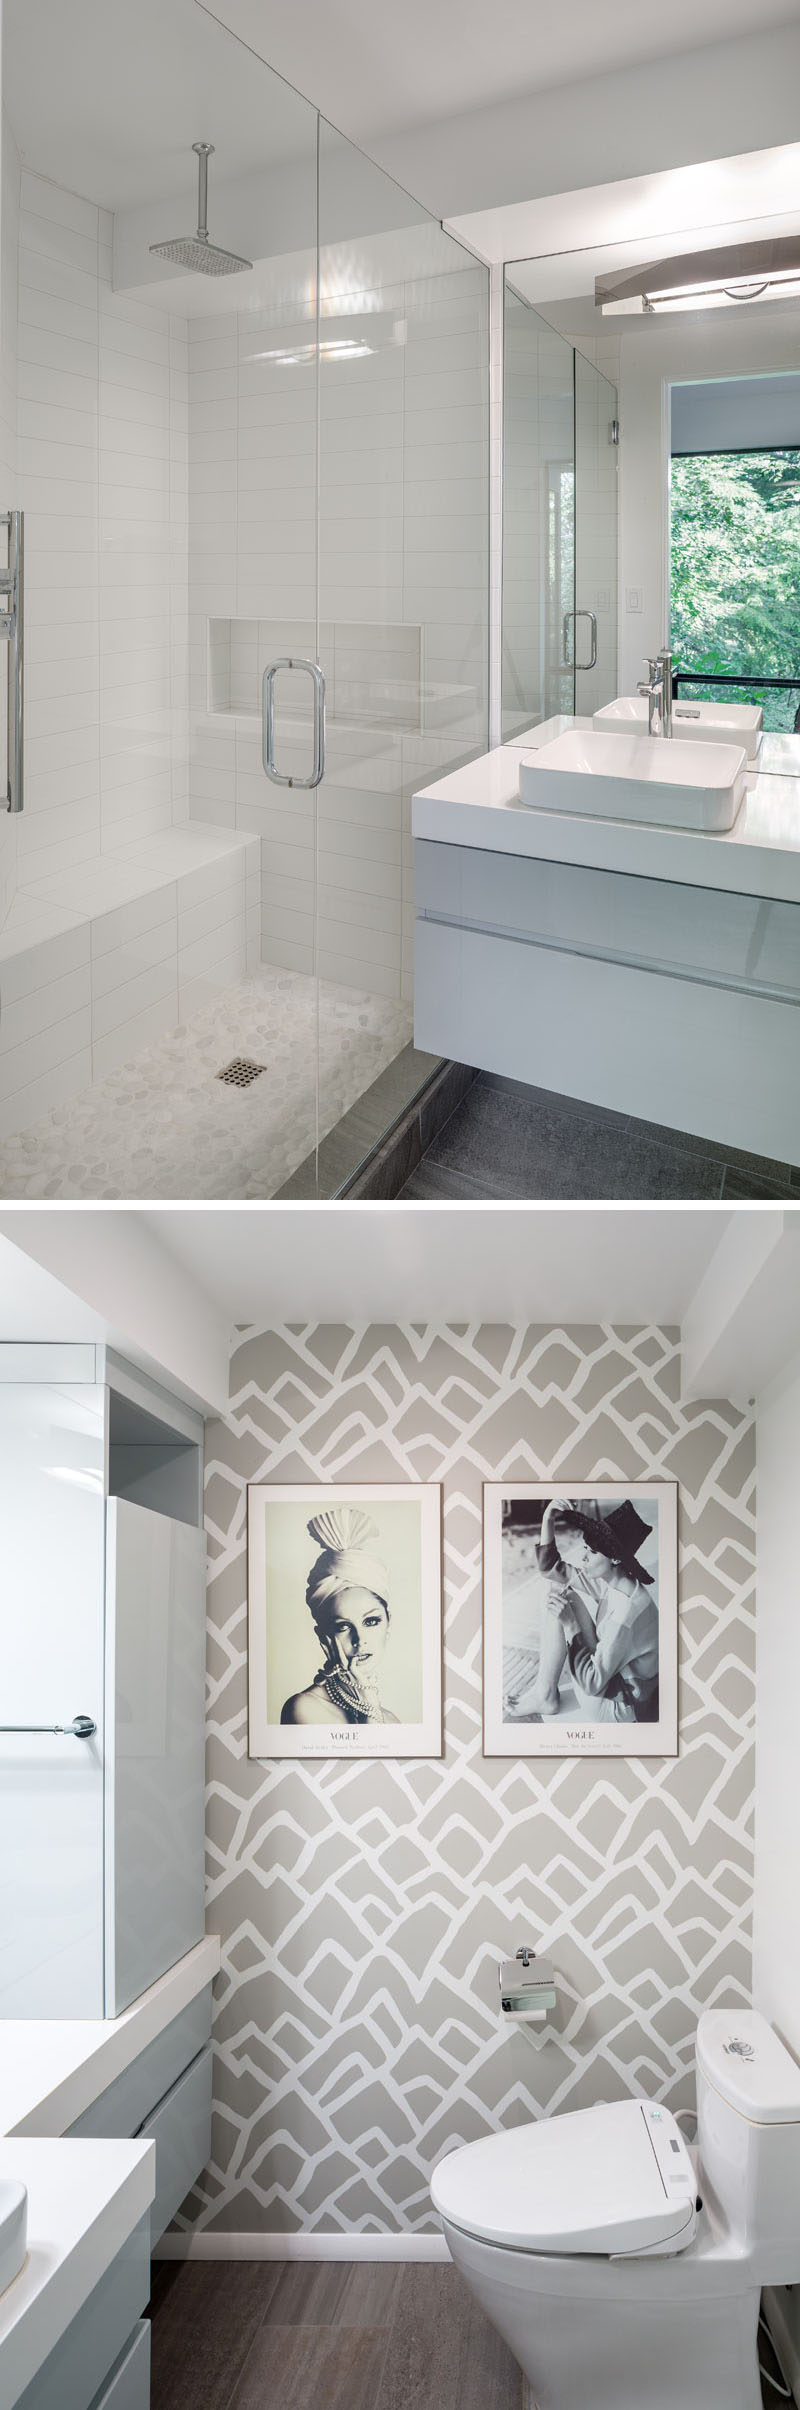 This contemporary bathroom has custom cabinetry with a high gloss automotive paint finish in dove gray. Other design highlights of the bathroom include an organic pebble floor for the shower and bold graphic wallpaper. #ContemporaryBathroom #BathroomDesign